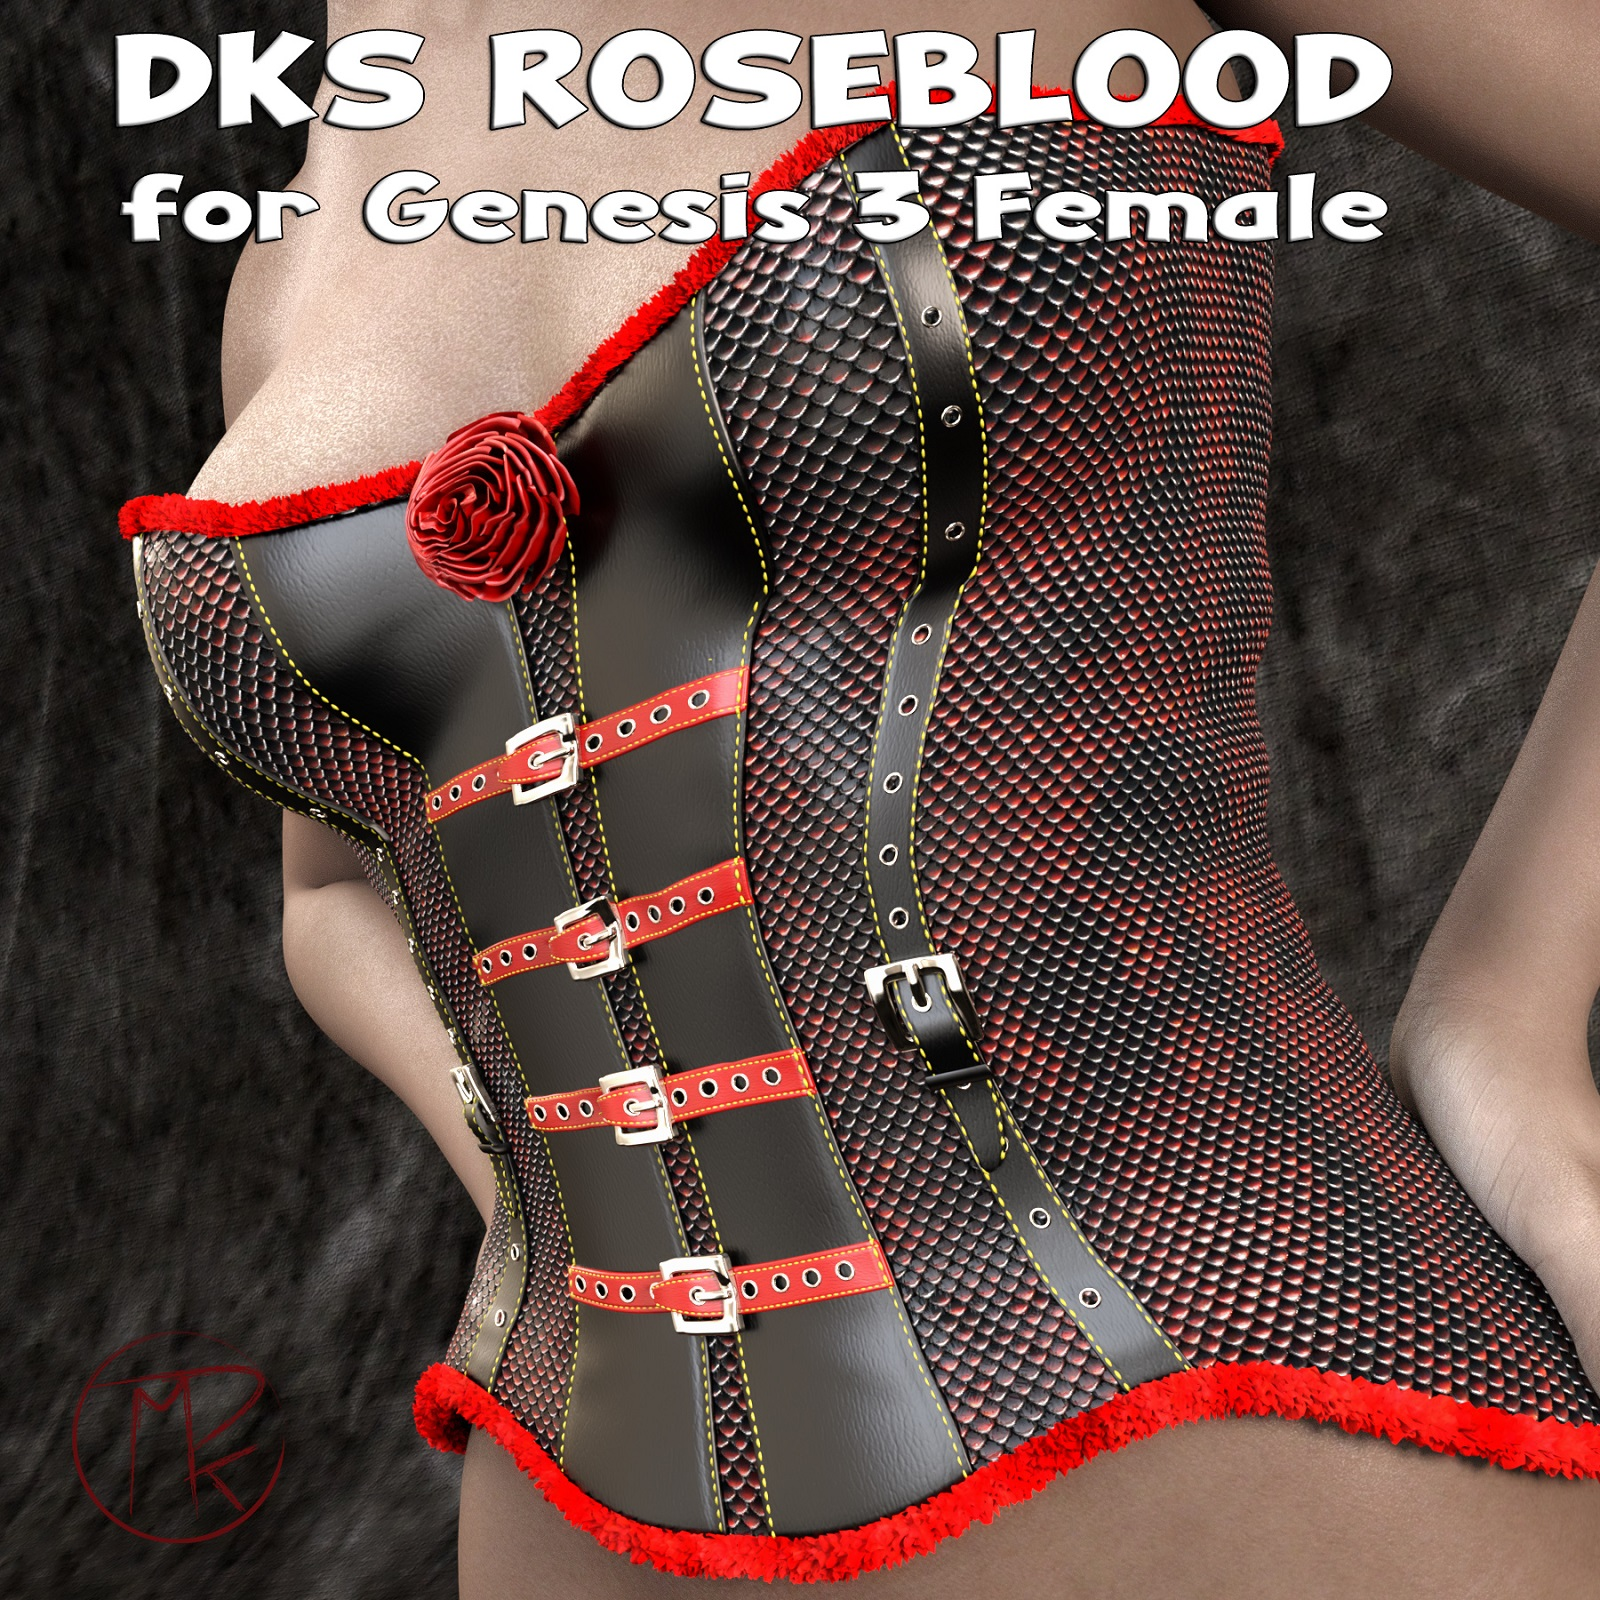 DKS RoseBlood for Genesis 3 Female